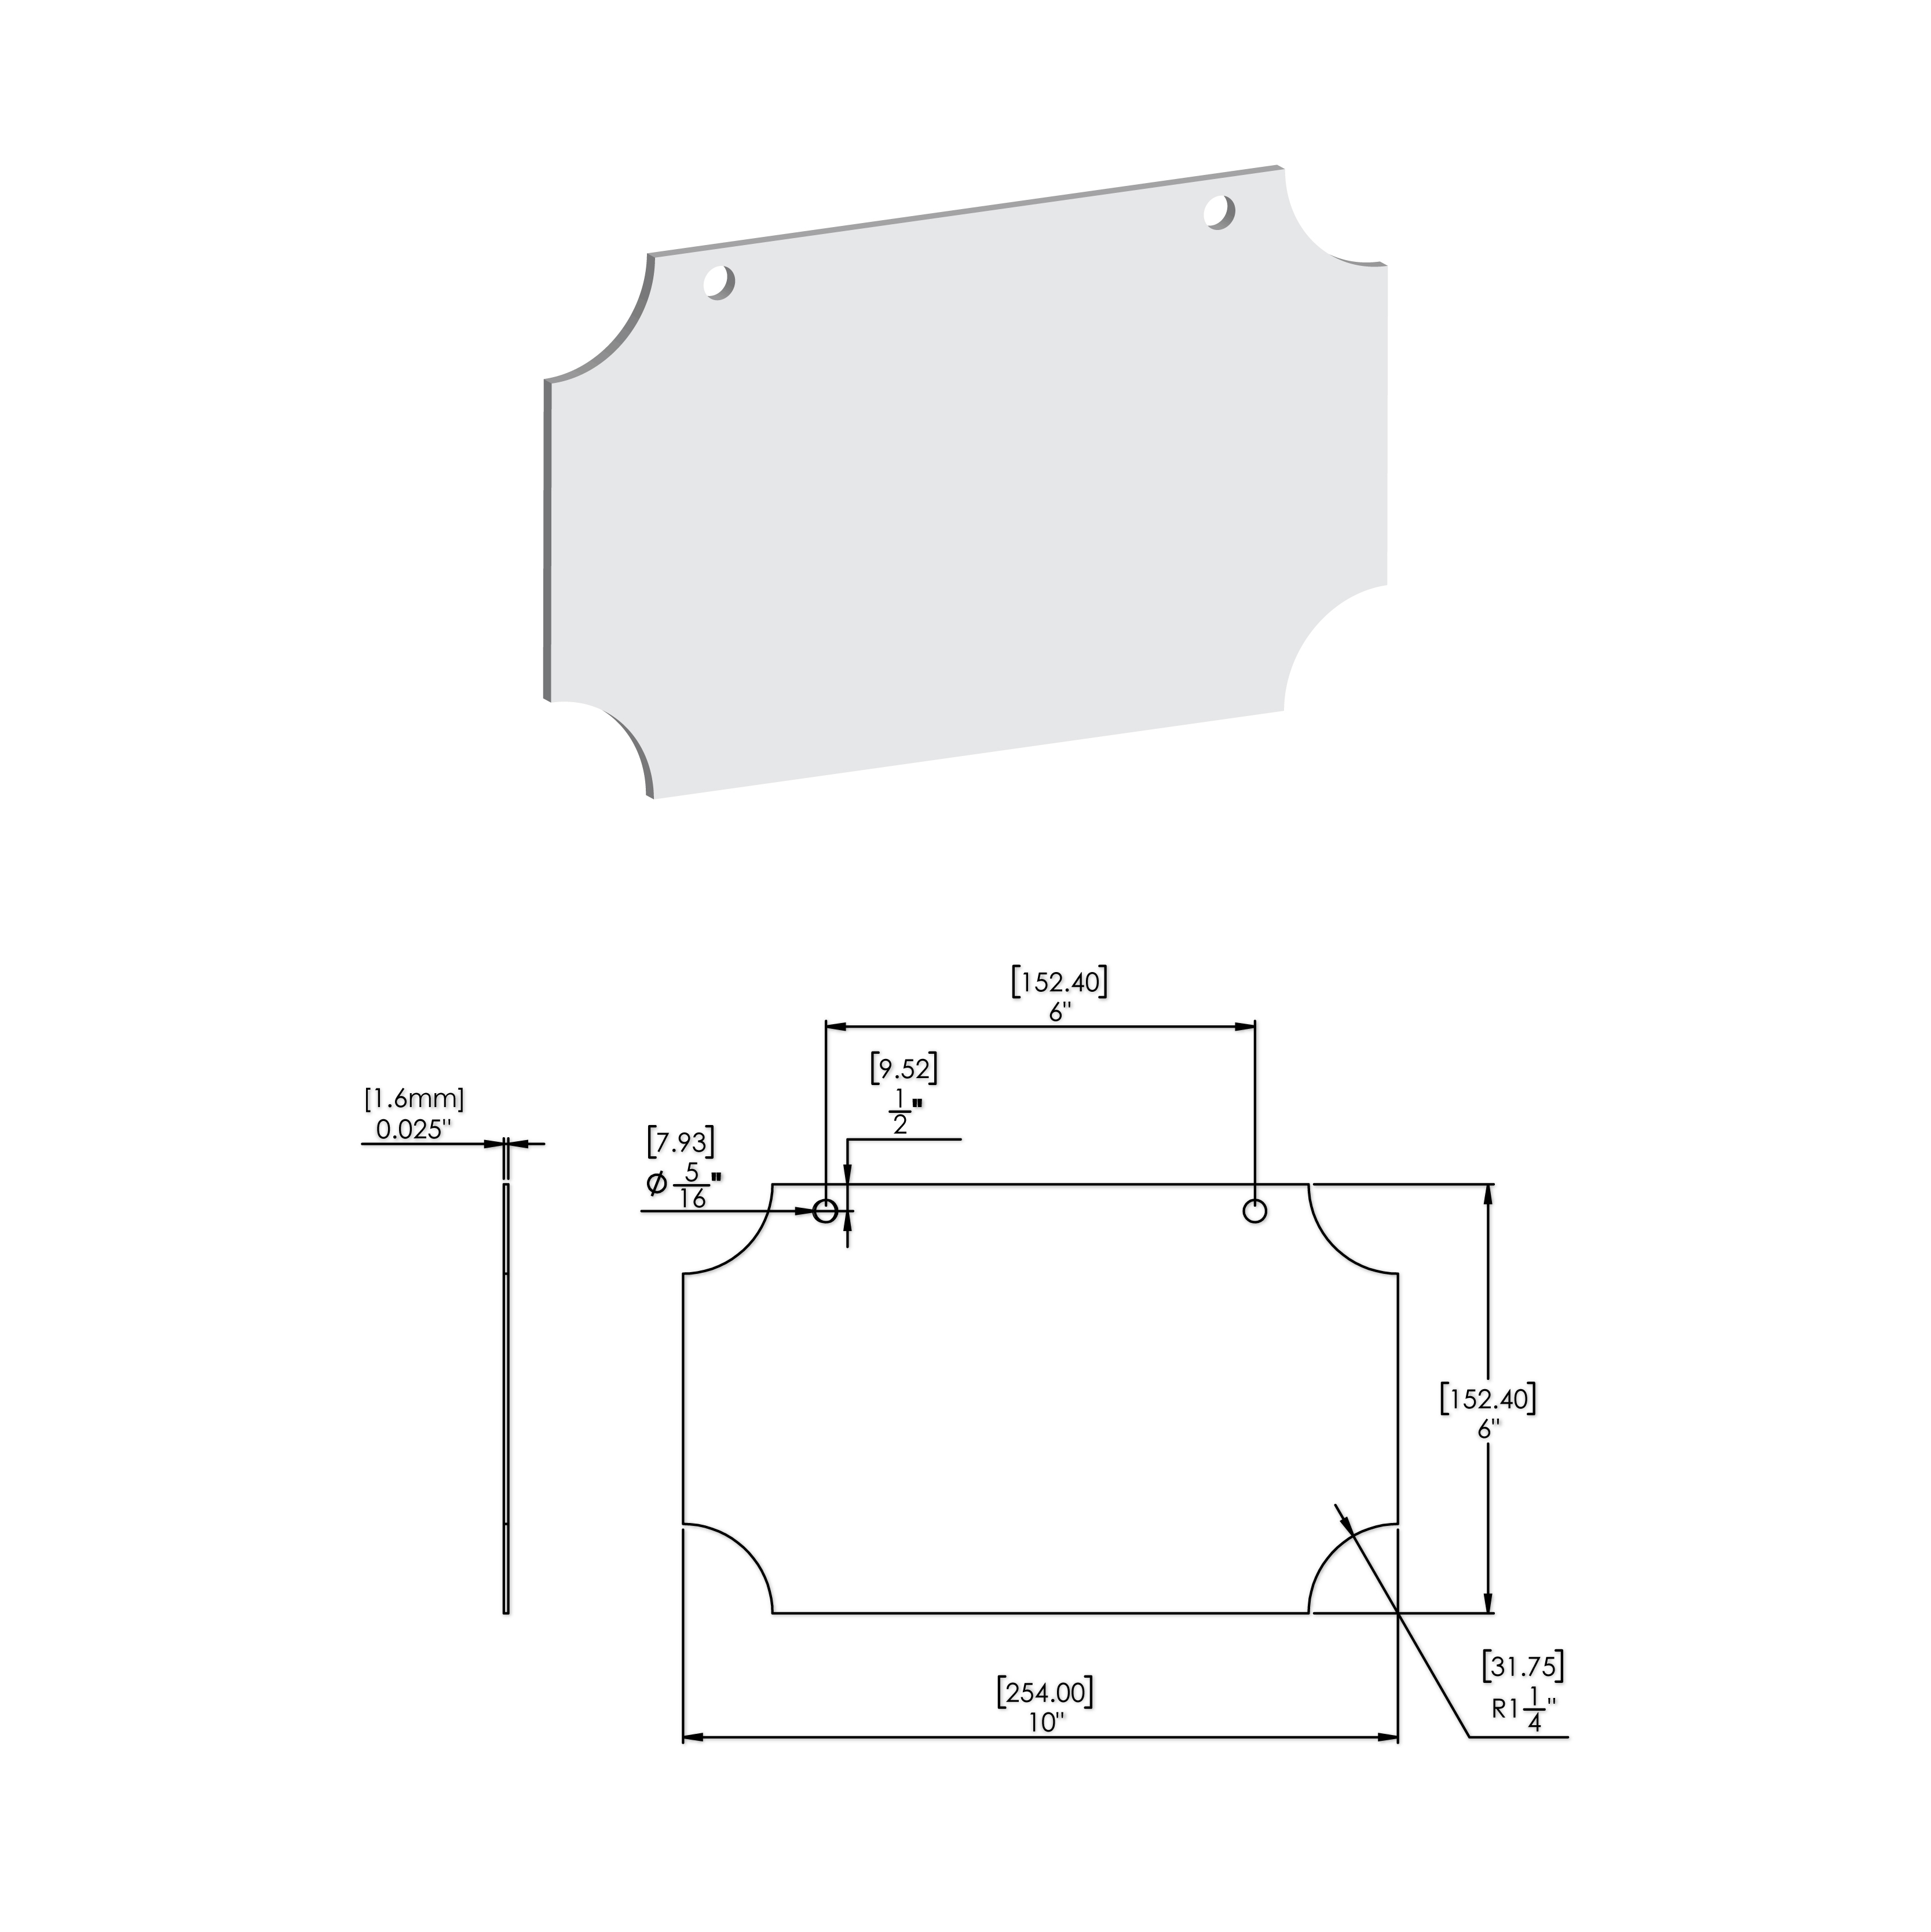 10'' W X 6'' H x .063'' T White Rectangle Sign Blanks with 1-1/4'' Inverted Corners and 2 Pre-Punched 5/16'' Holes